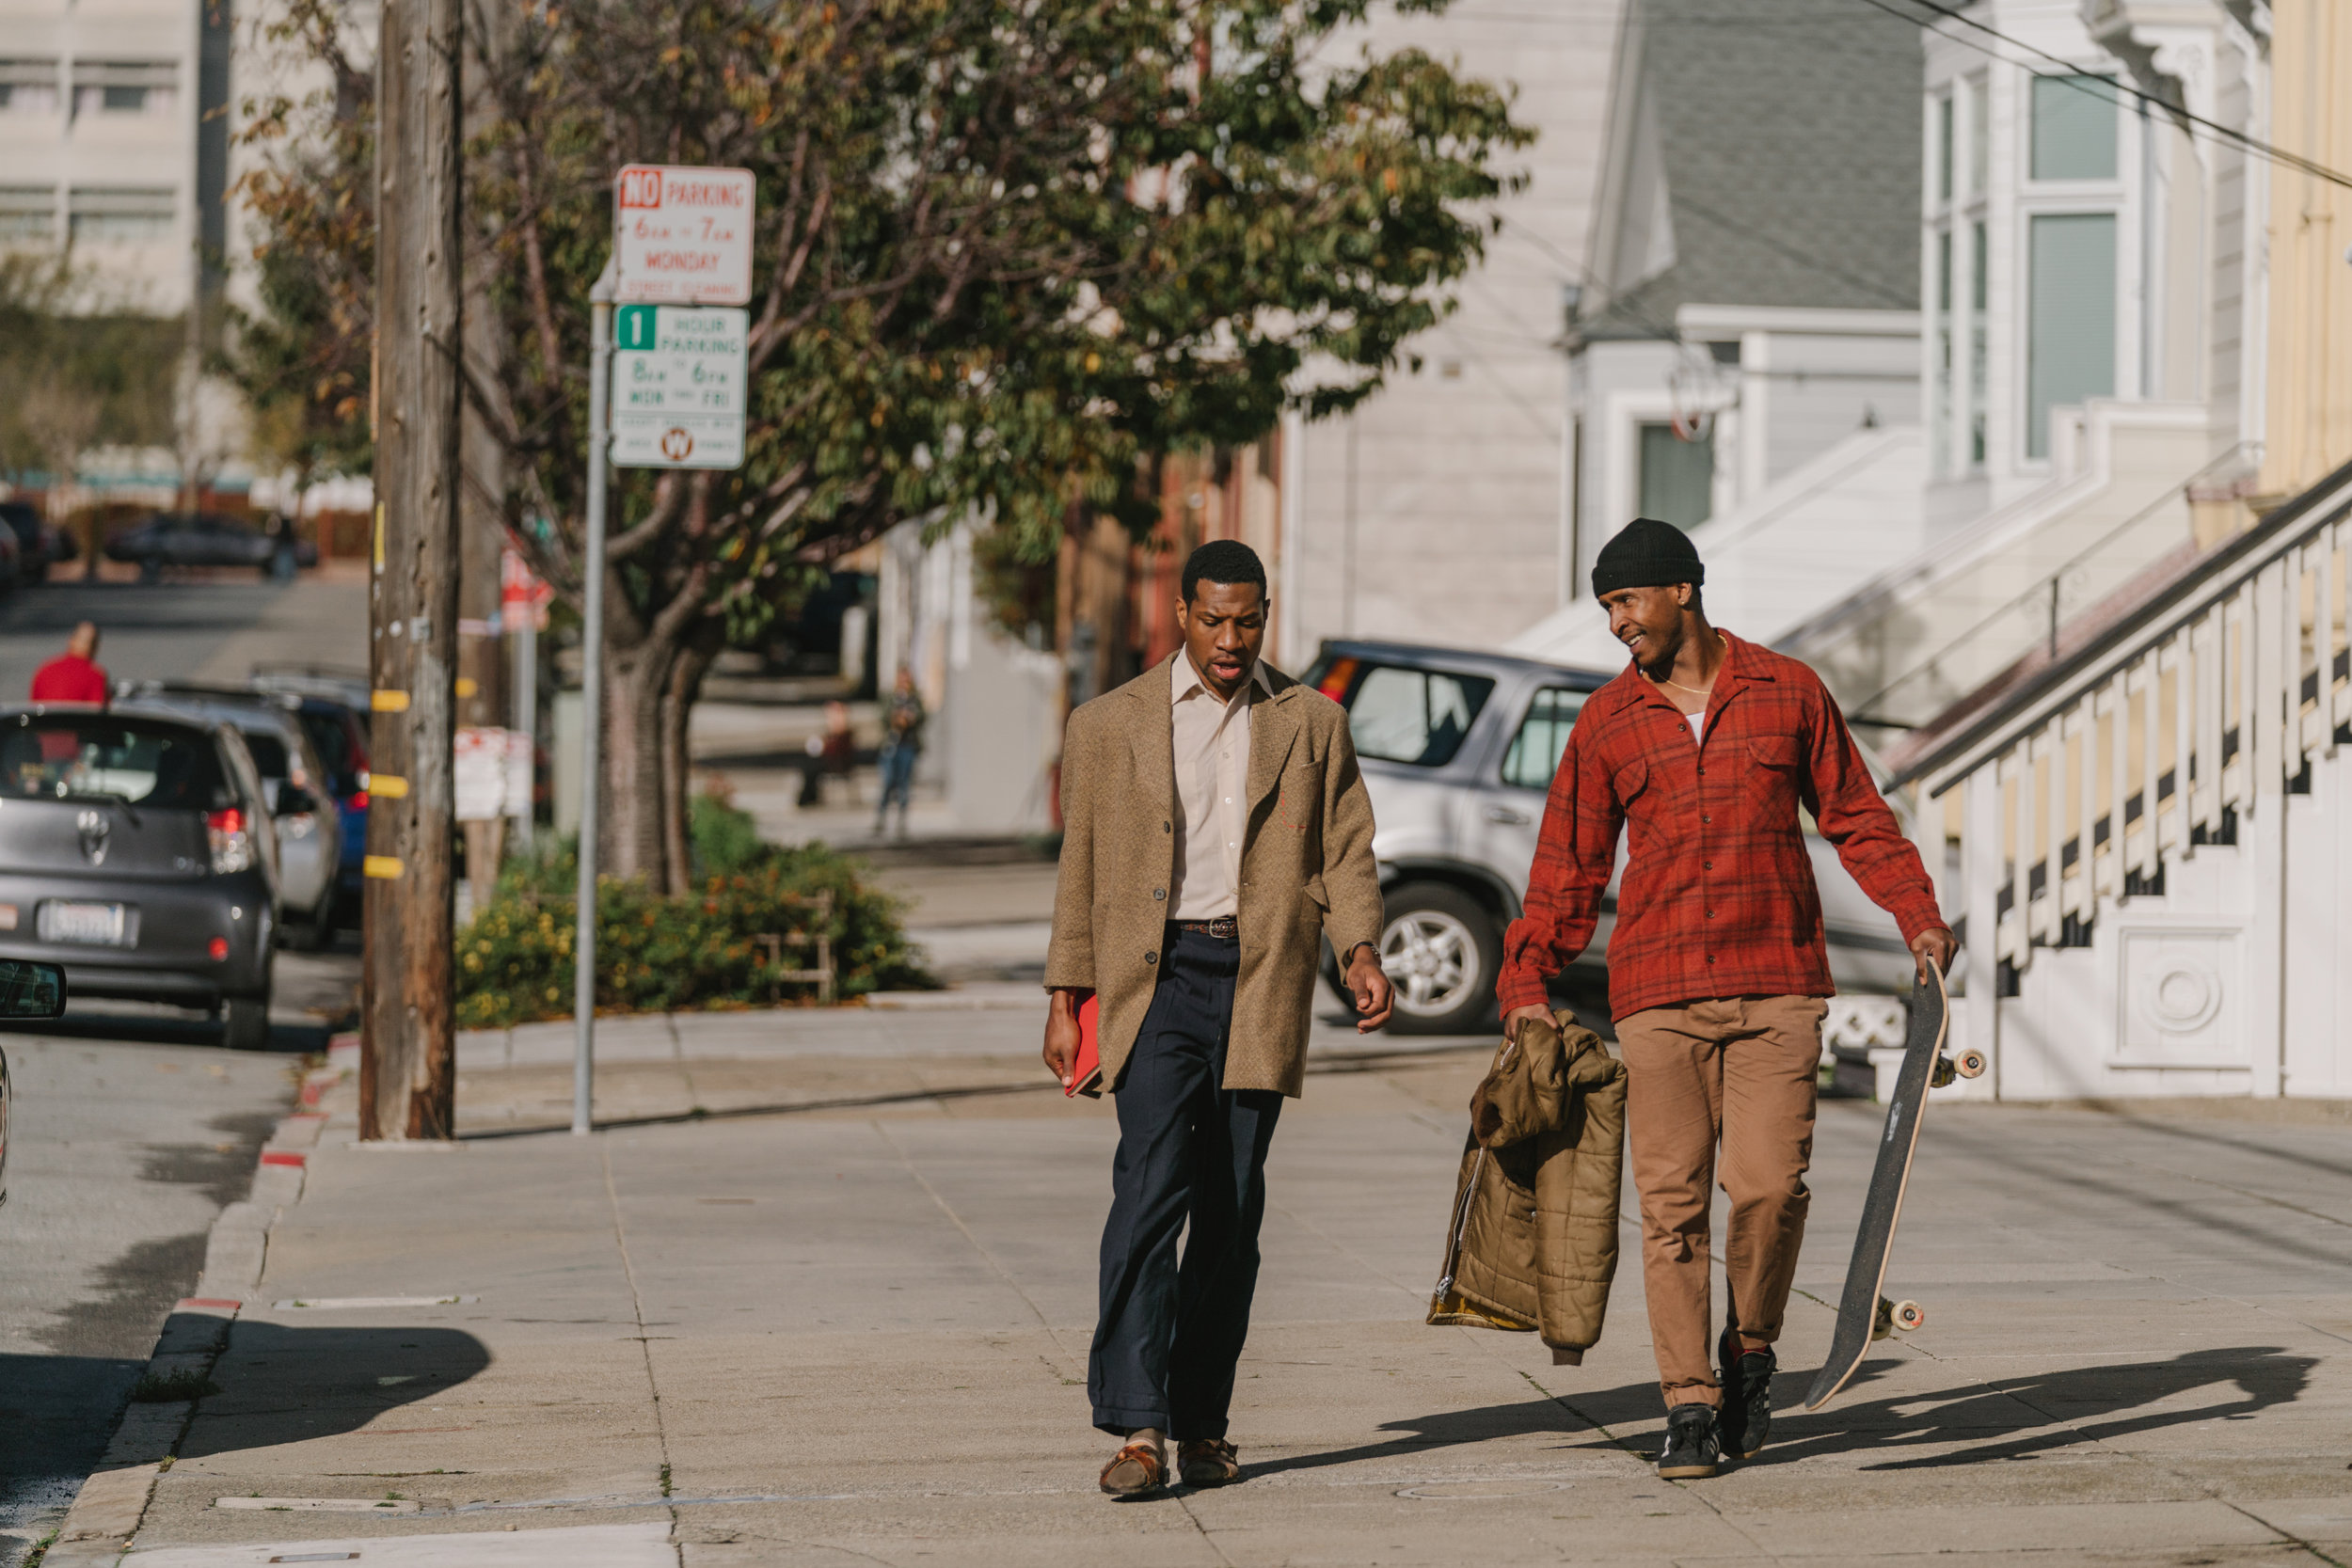 """Jimmie Fails, right, and Jonathan Majors appear in """"The Last Black Man In San Francisco,"""" directed by Joe Talbot, an official selection in the U.S. Dramatic Competition of the 2019 Sundance Film Festival. (Photo by Peter Prato, ourtesy A24 / Sundance Institute)"""